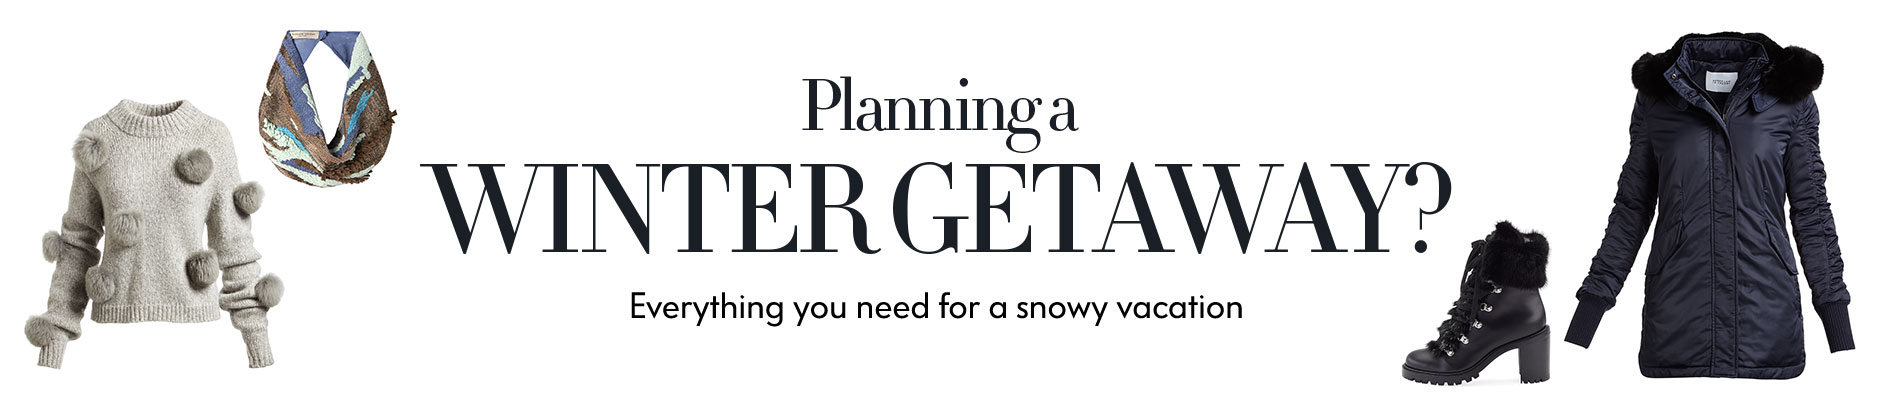 Planning a winter getaway? Everything you need for a snowy vacation